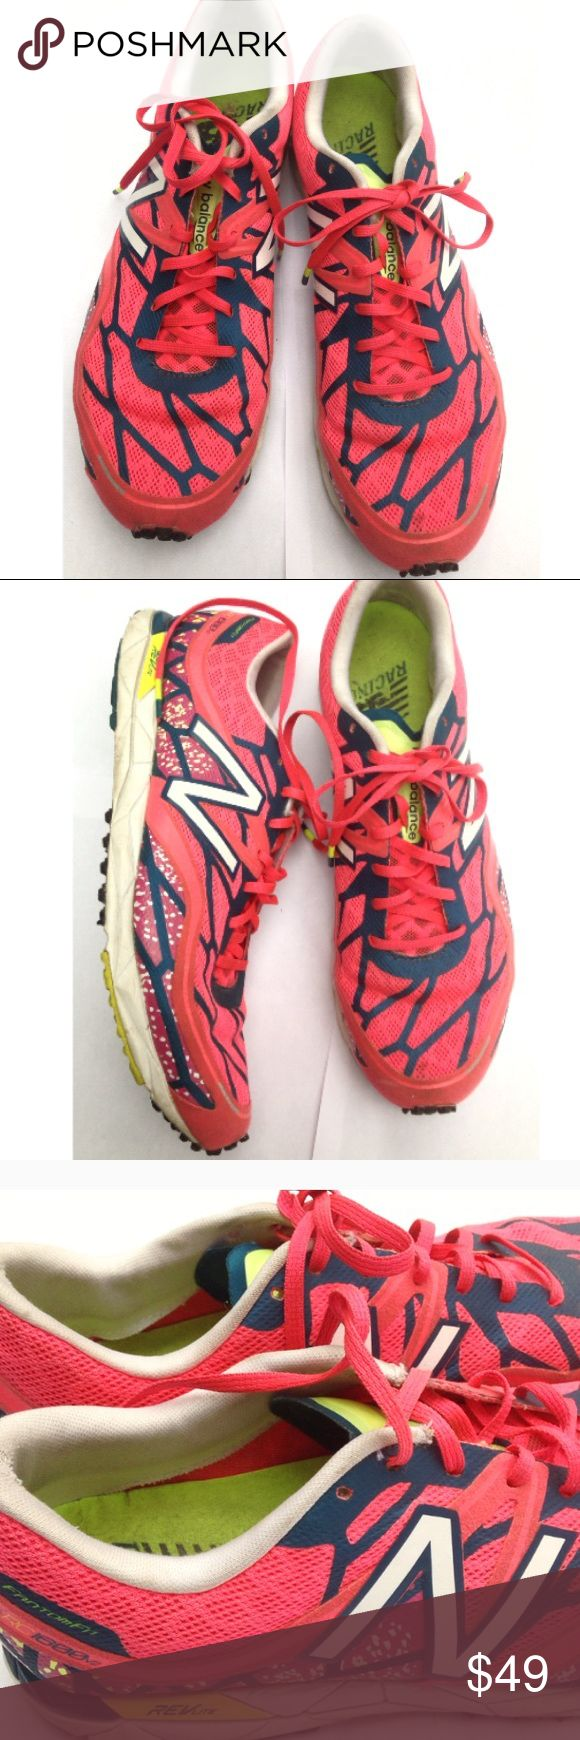 ✅1 HOUR SALE❗️l Running Sneakers Size 10 Womens New Balance Running Racing sneakers Womens size 10 rev light light weight minimal running pre owned New Balance Shoes Sneakers